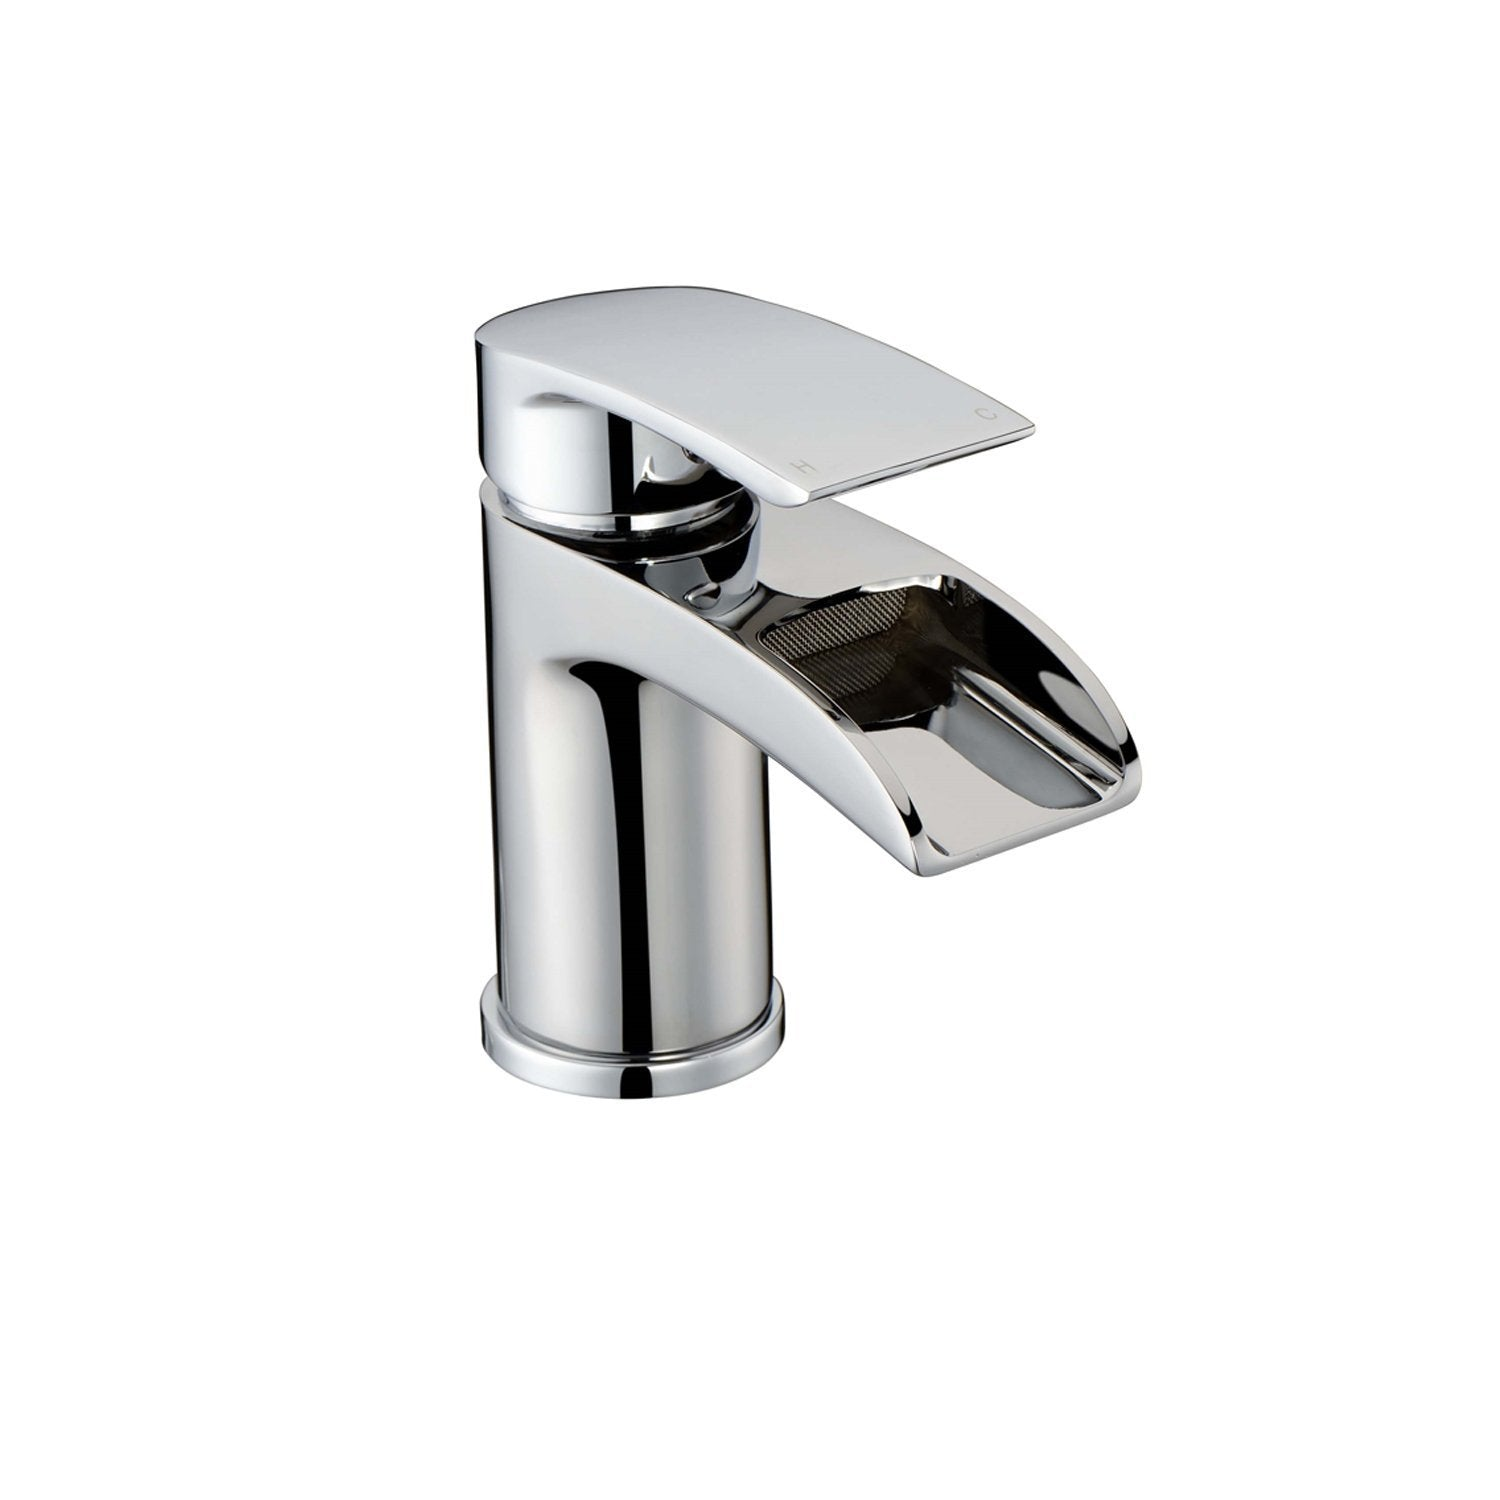 RAK Art Waterfall Curve Mono Basin Mixer Tap - Chrome